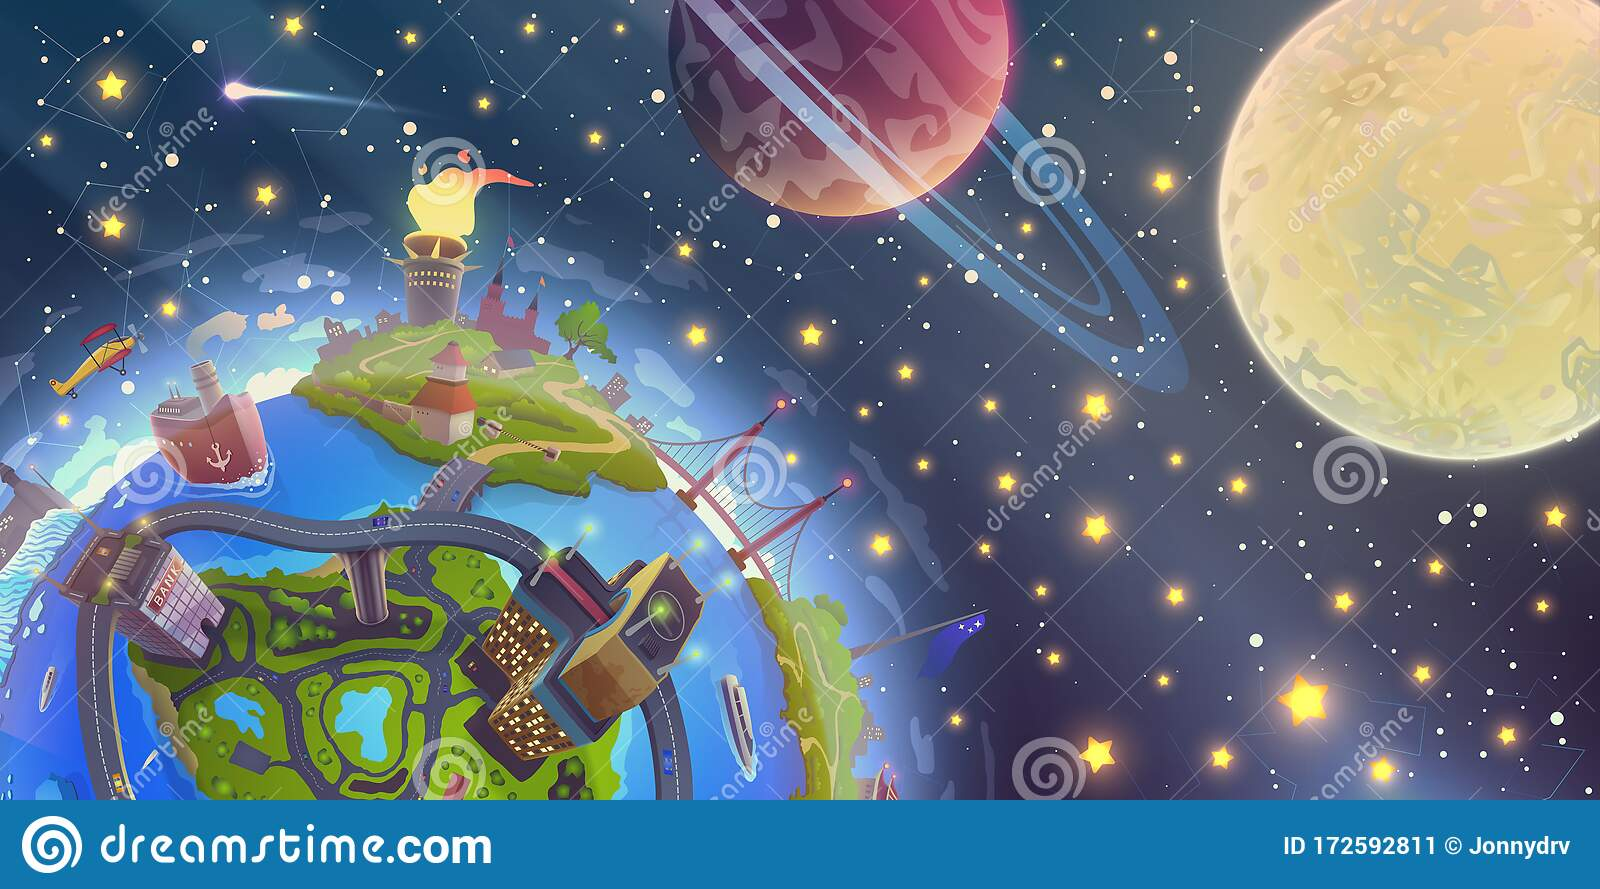 Fantasy Space Landscape With Magic 3d Earth Over Night Sky With Stars Moon And Planets Illustration In Vector Blue Globe Drawing Stock Vector Illustration Of Nature Culture 172592811